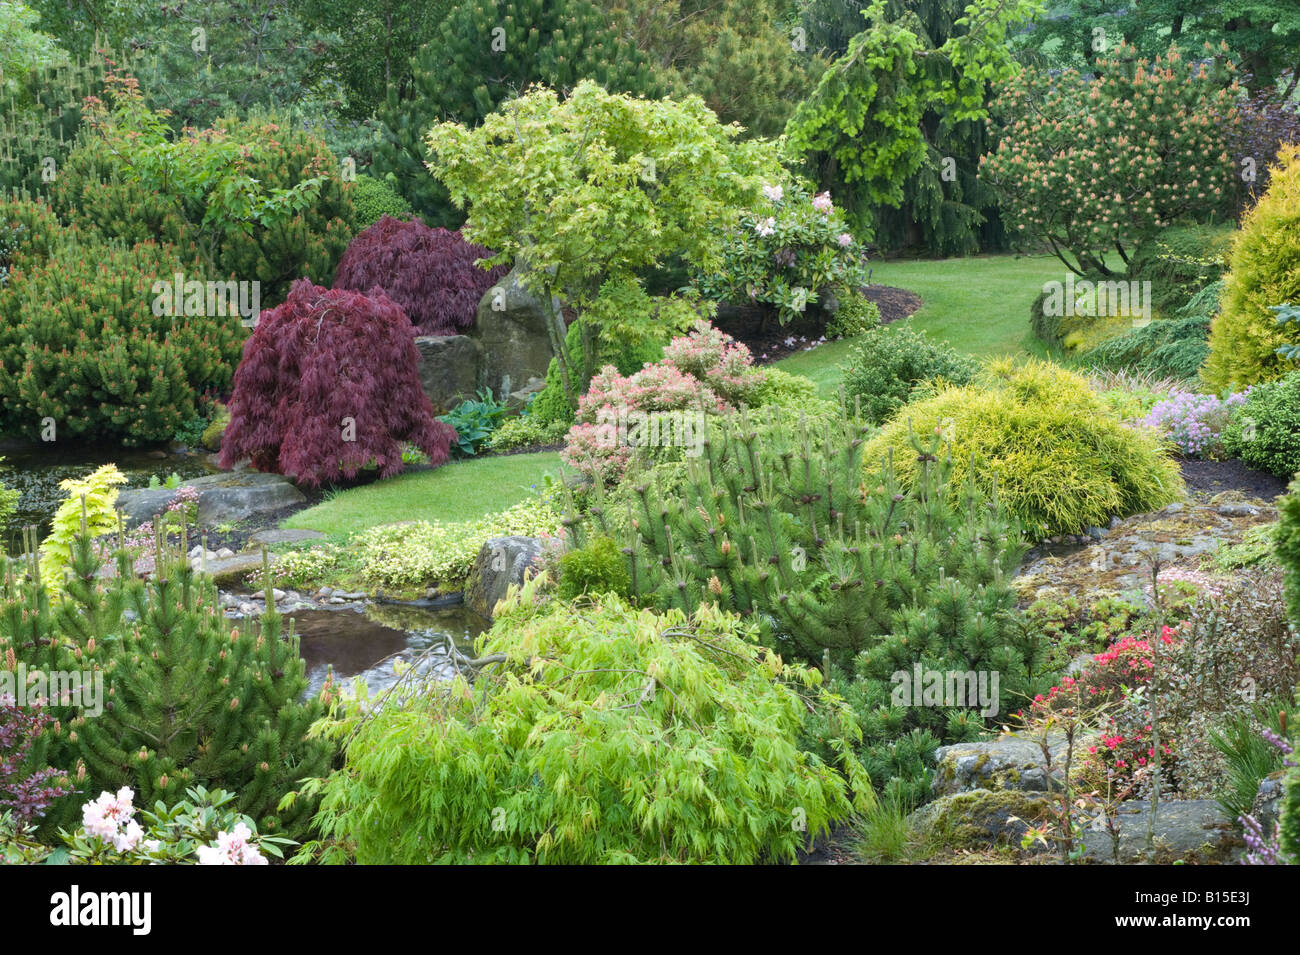 Garden Pond In Rock Garden Design By Bahaa Seedhom North Yorkshire England  May